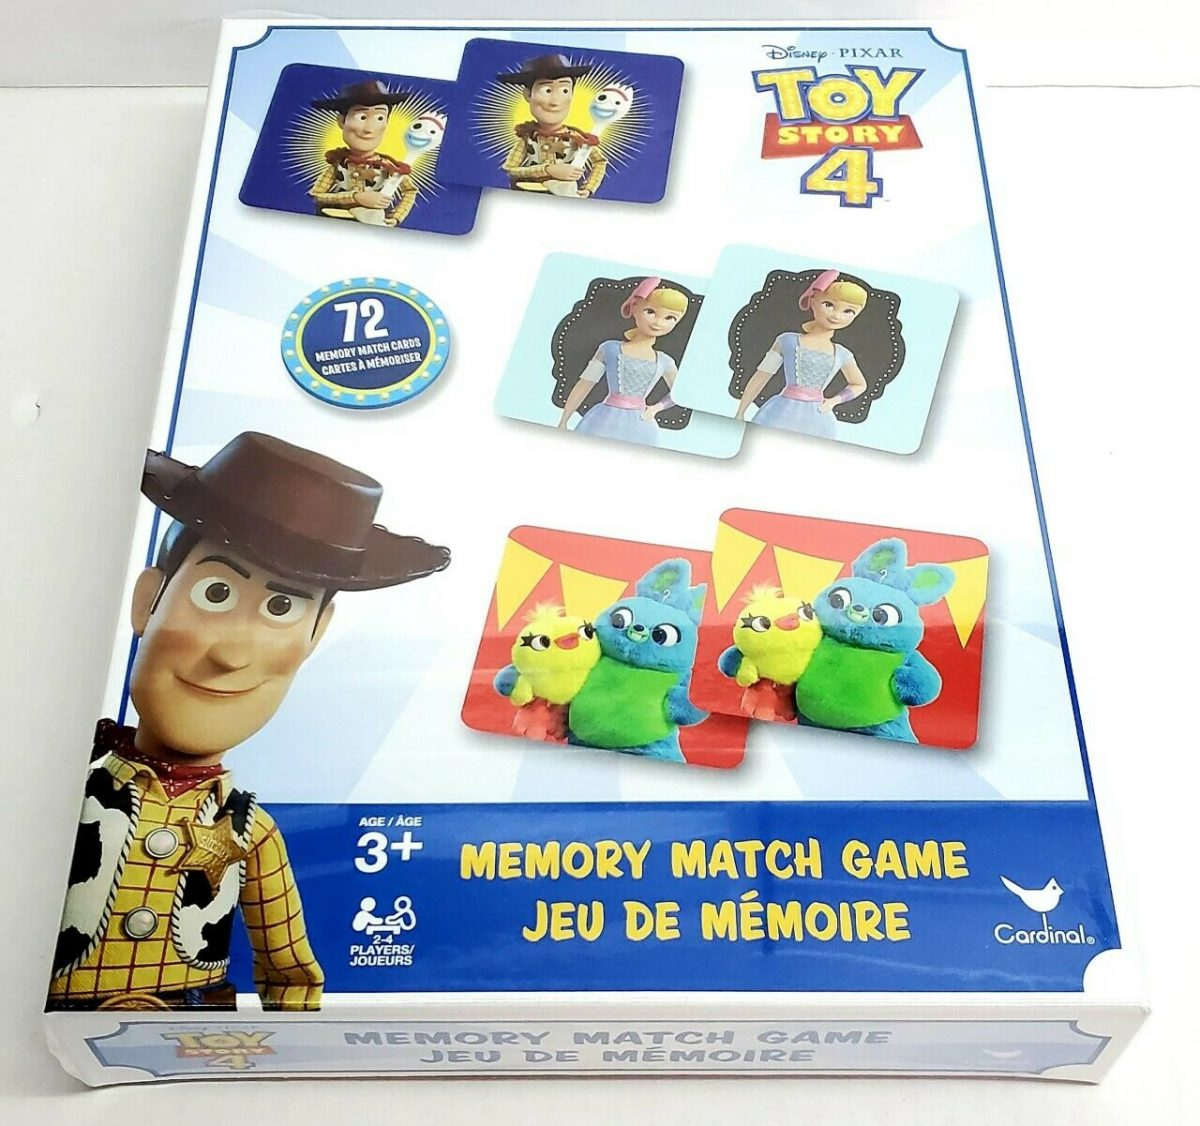 DISNEY PIXAR TOY STORY 4 Memory Match Game Cards Kids Educational NEW